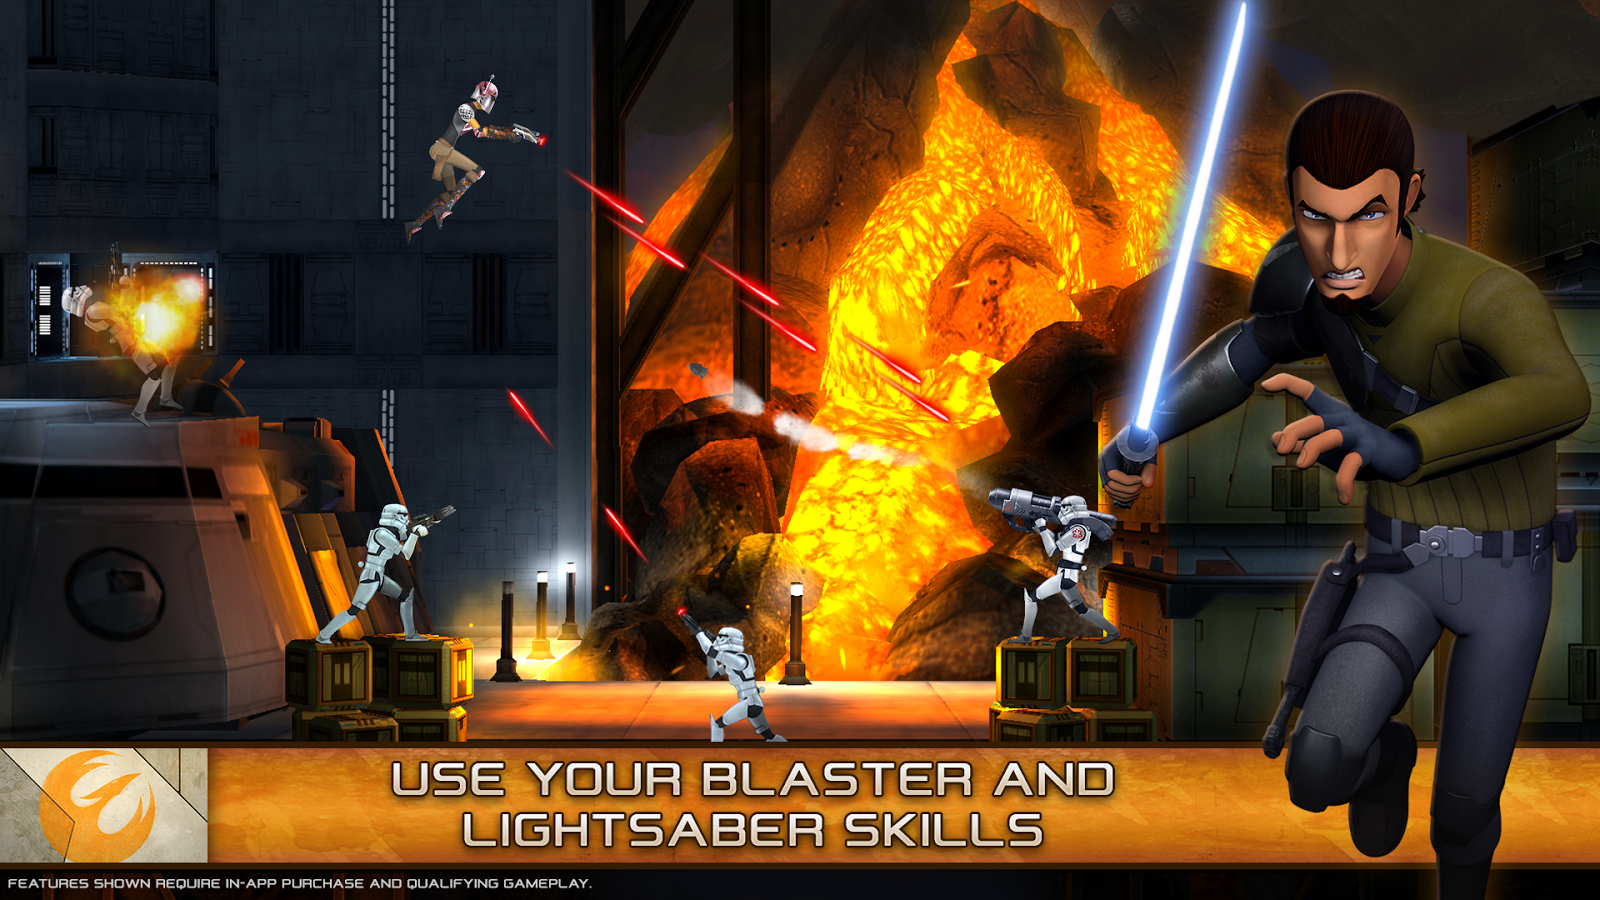 Star wars purn game nackt gallery